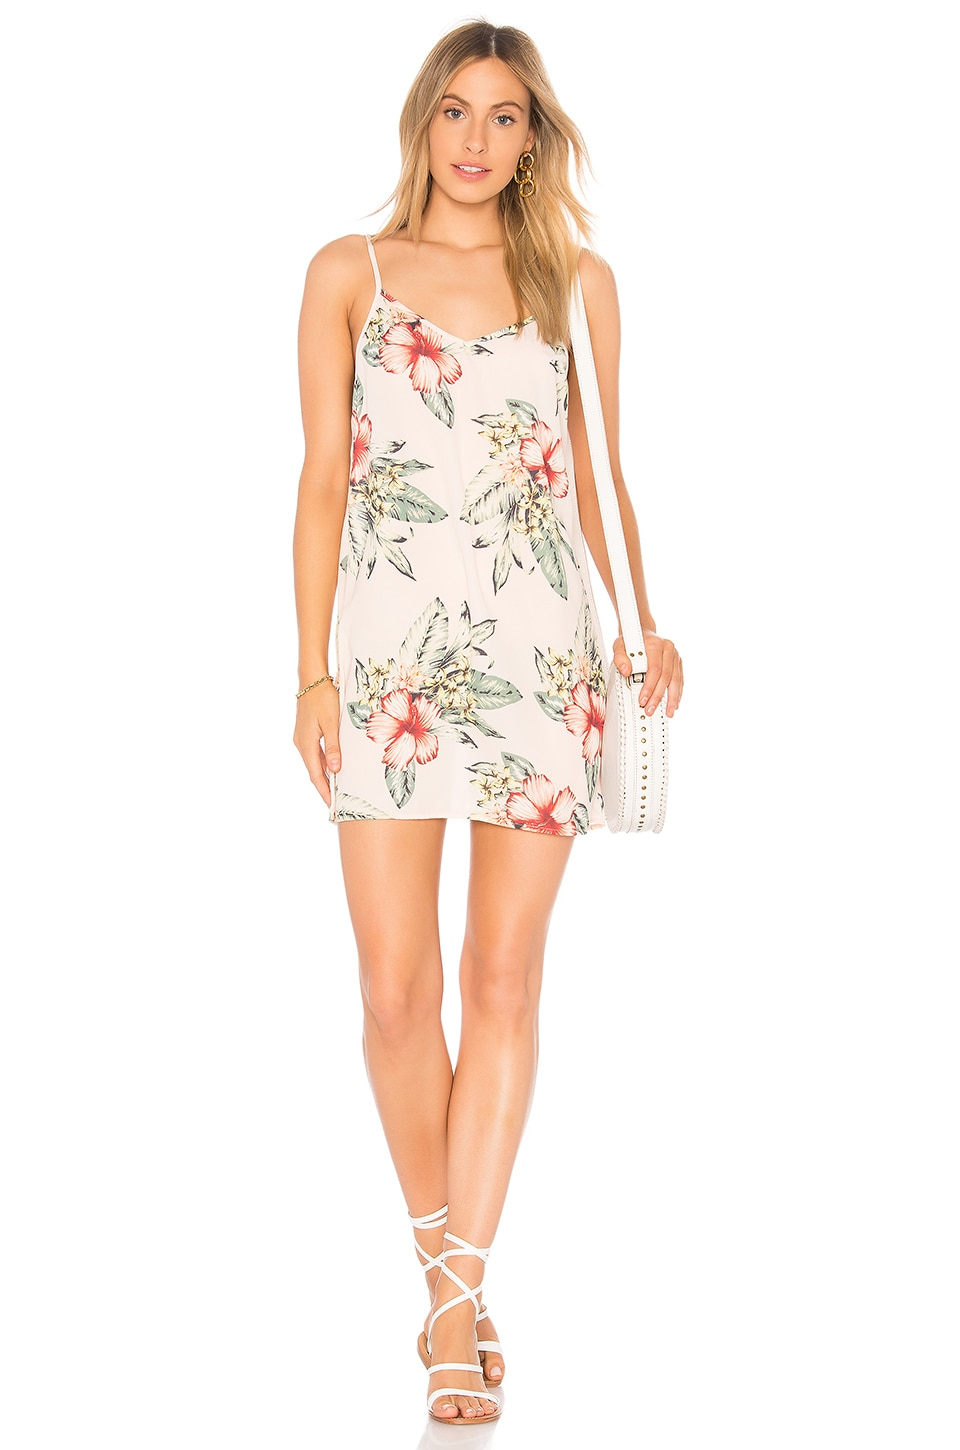 Montce Swim Slip Dress in Tommi Floral